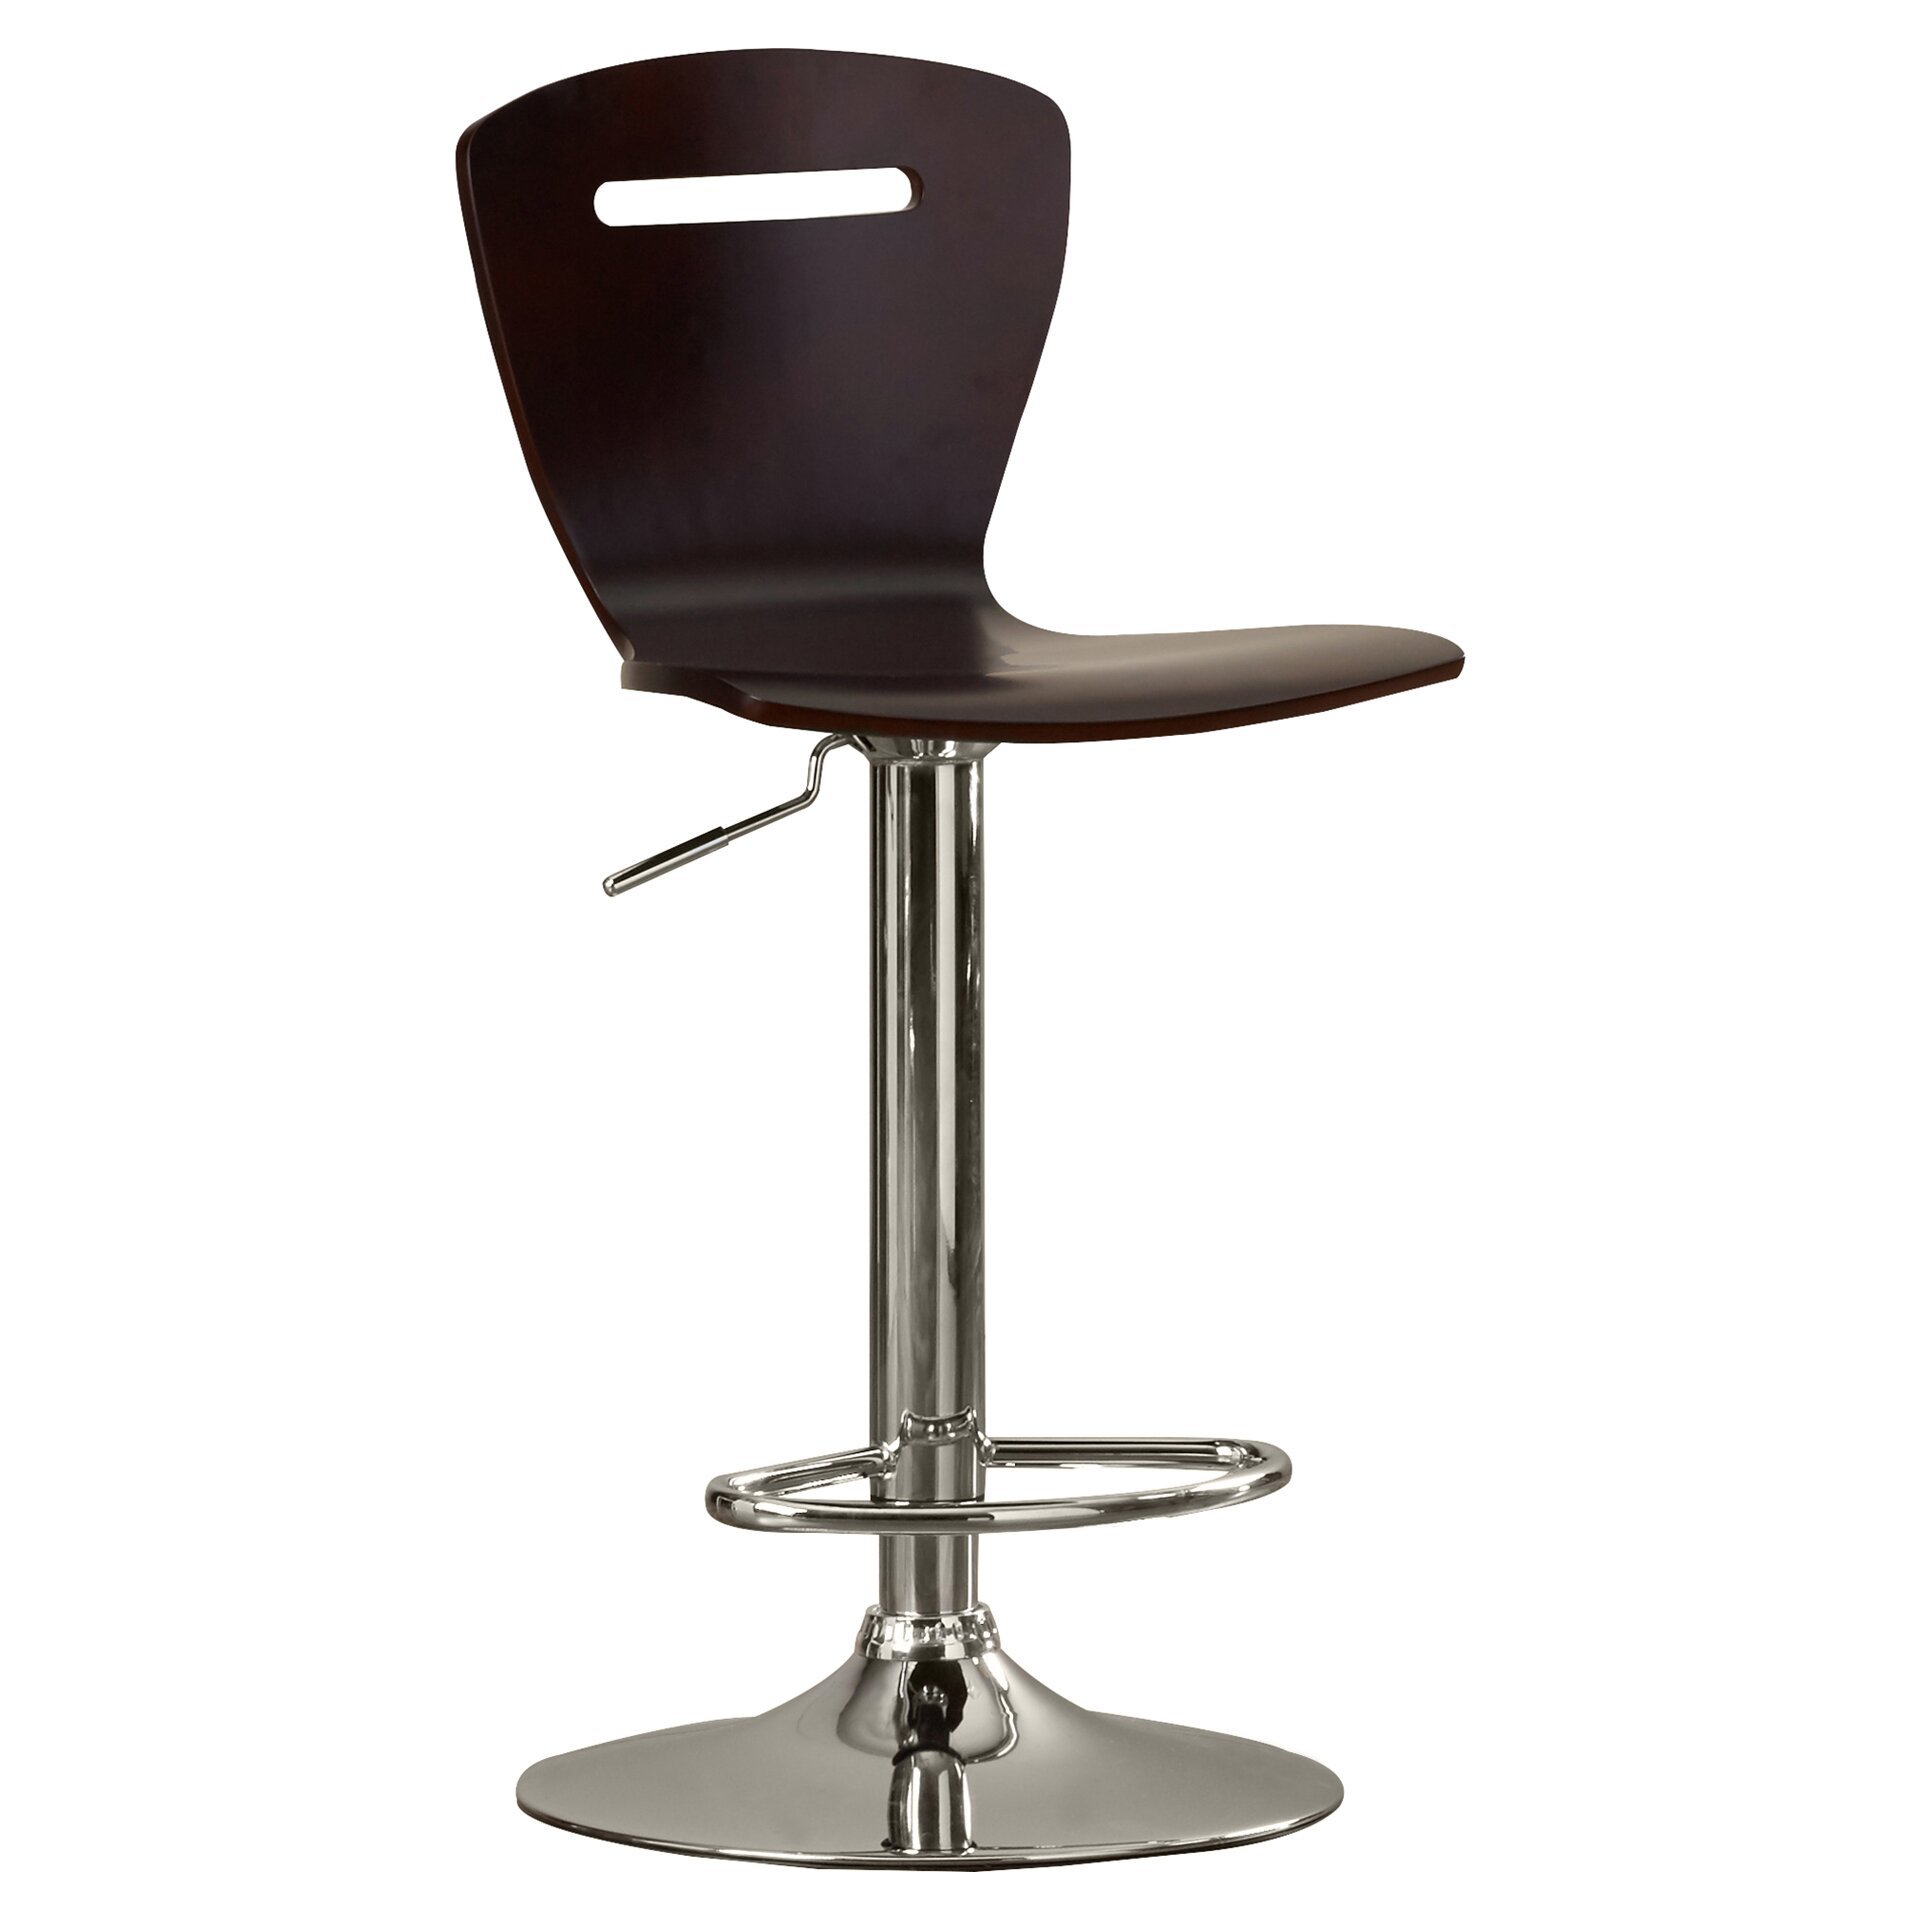 Design sloane adjustable height swivel bar stool amp reviews wayfair